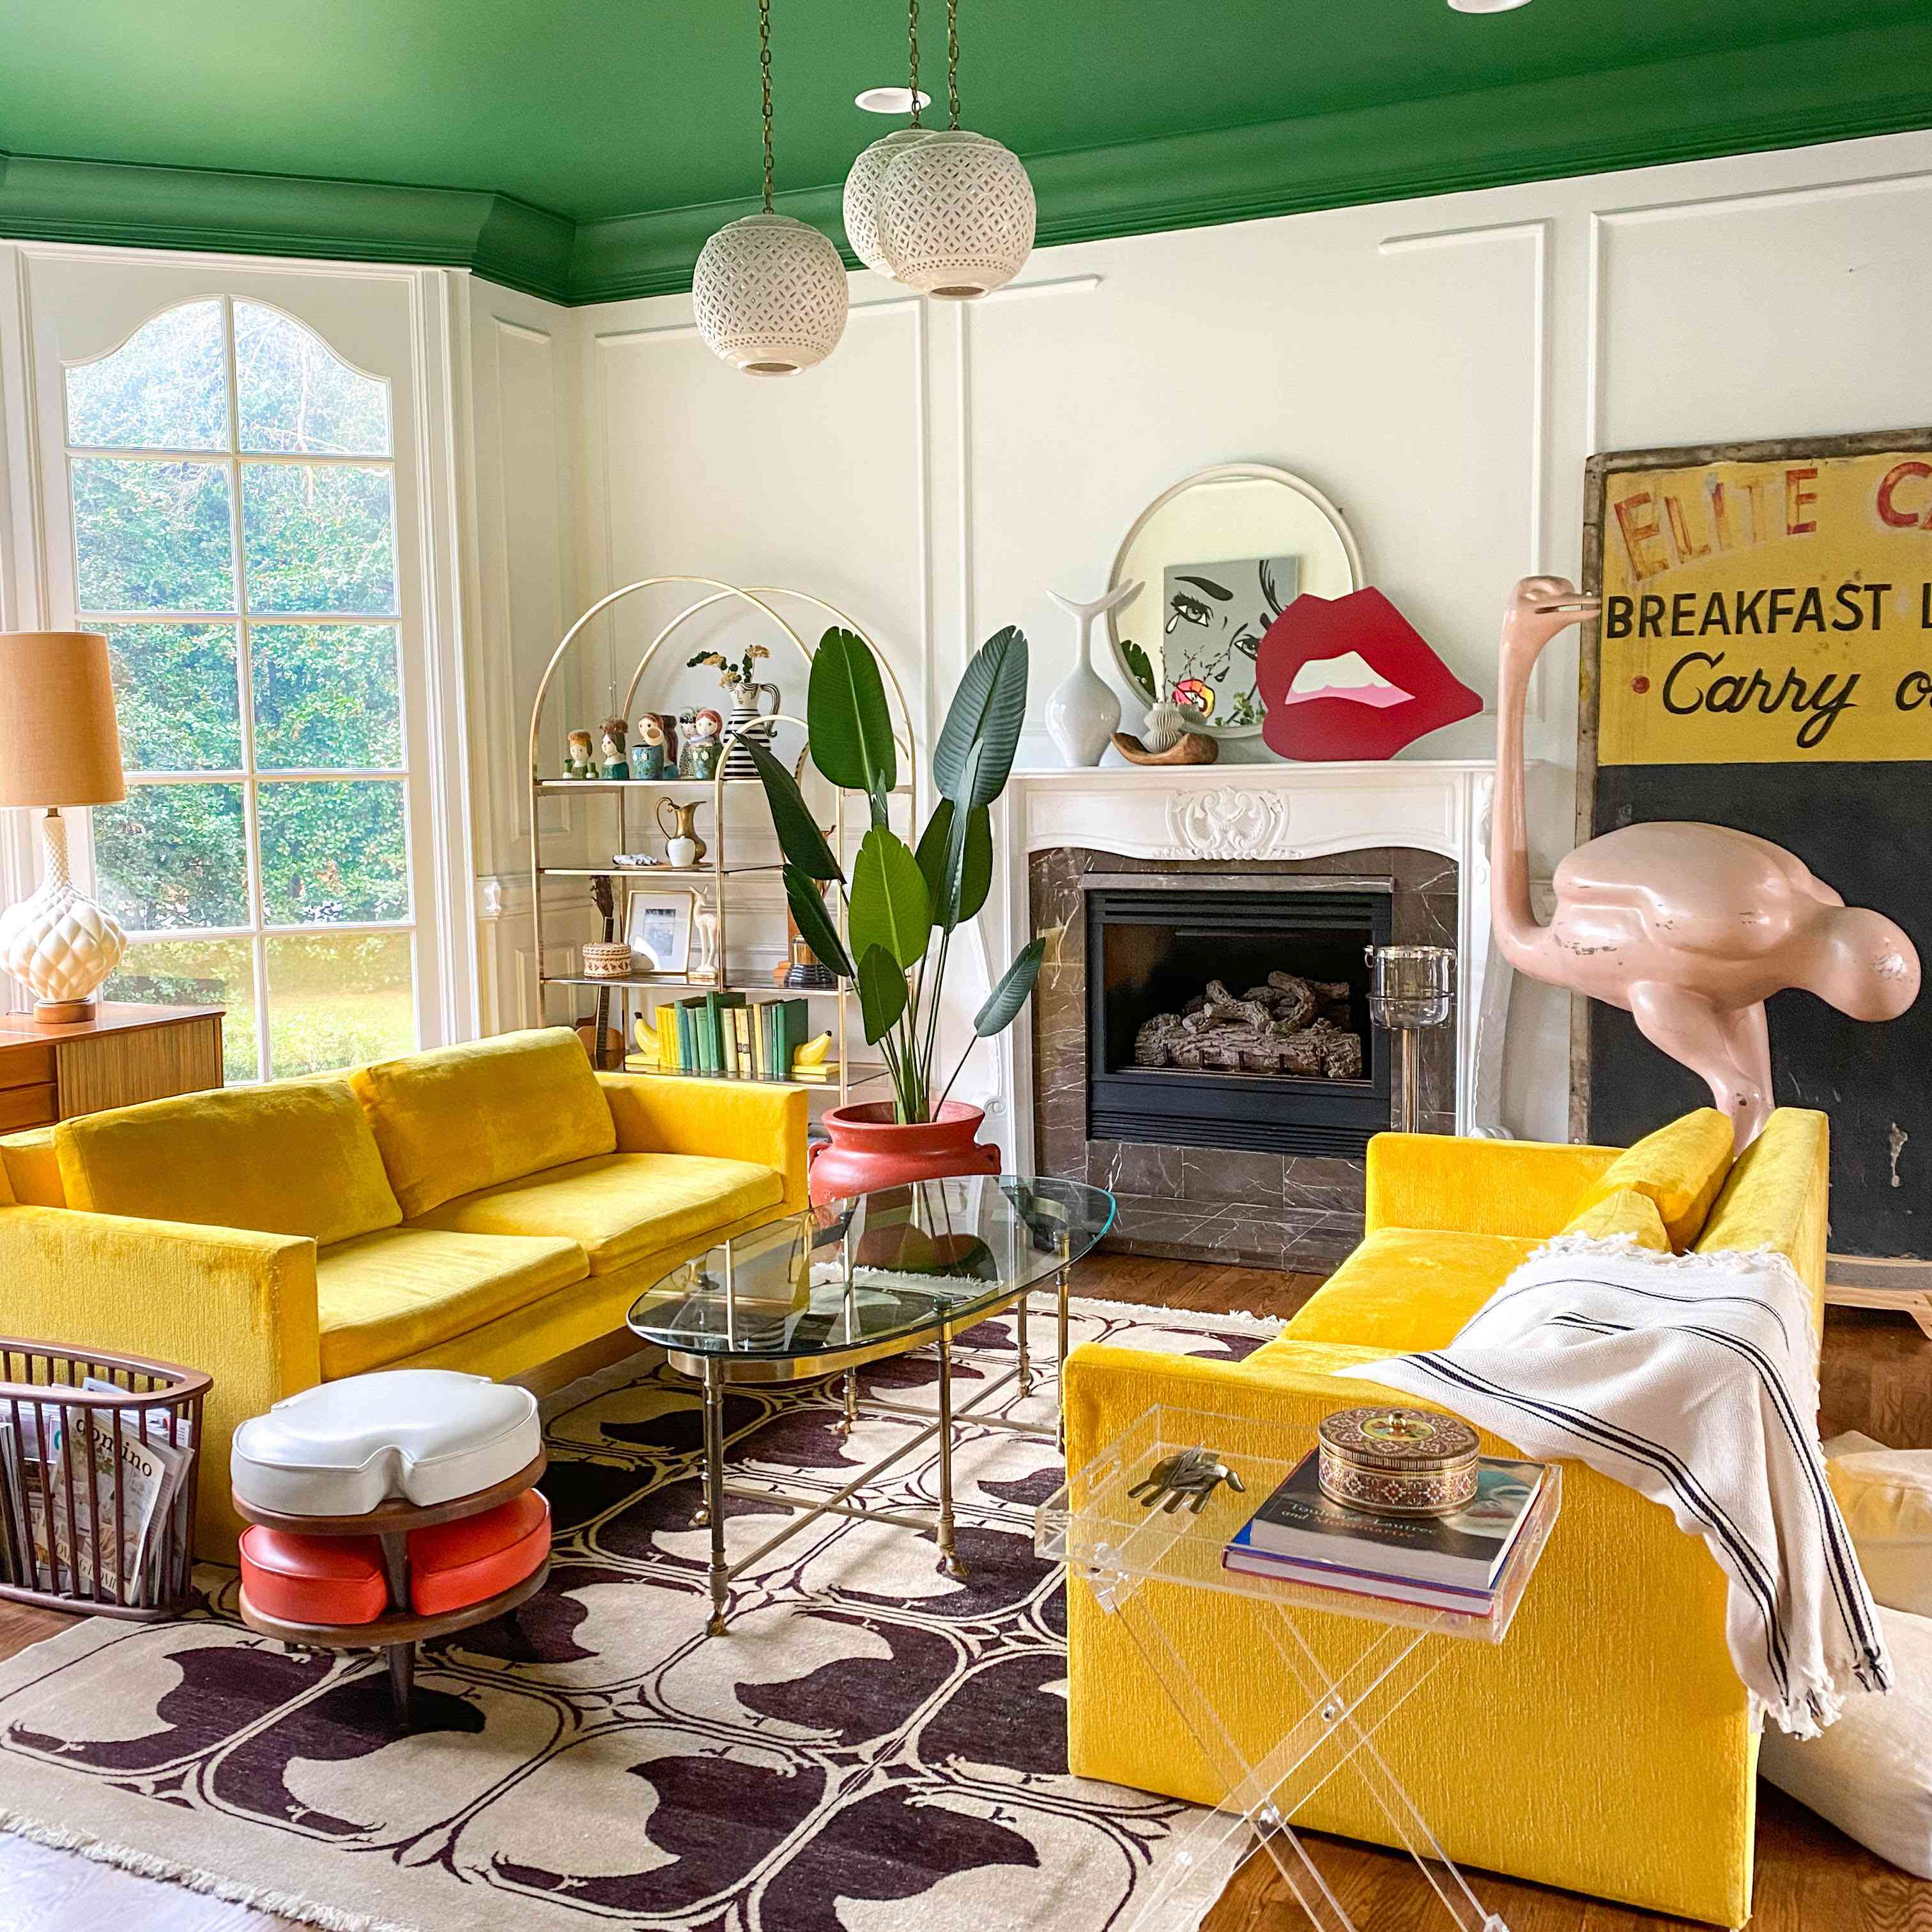 Natalie Papier's living room features lots of animal themes, including the huge pink ostrich